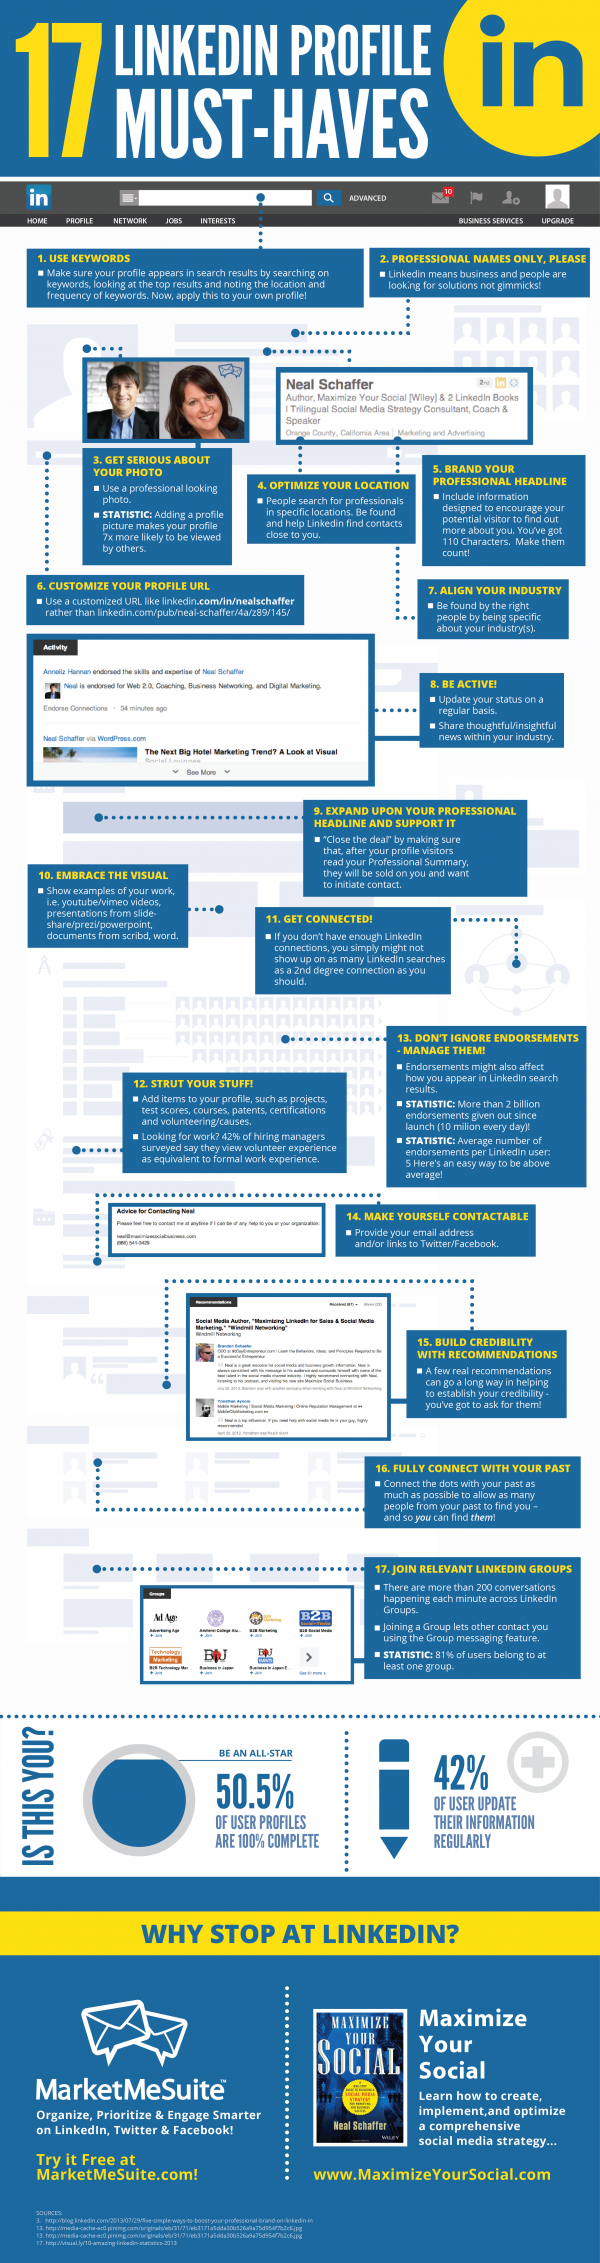 LinkedIn Profile Optimization infographic